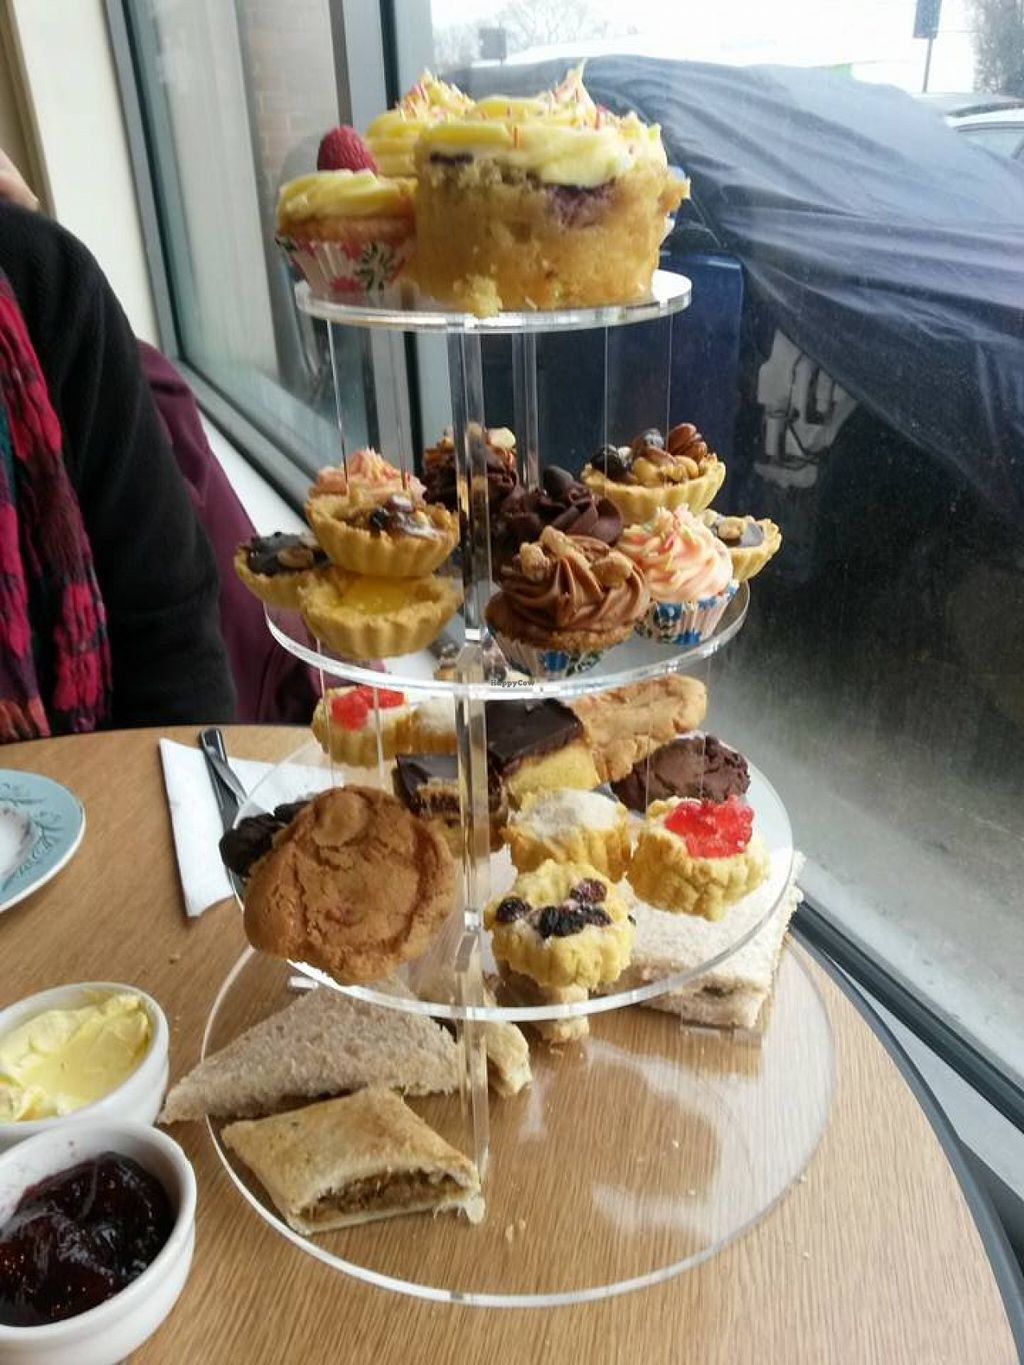 """Photo of Steel City Cakes  by <a href=""""/members/profile/orangensaft"""">orangensaft</a> <br/>Vegan afternoon tea <br/> April 16, 2016  - <a href='/contact/abuse/image/44574/144897'>Report</a>"""